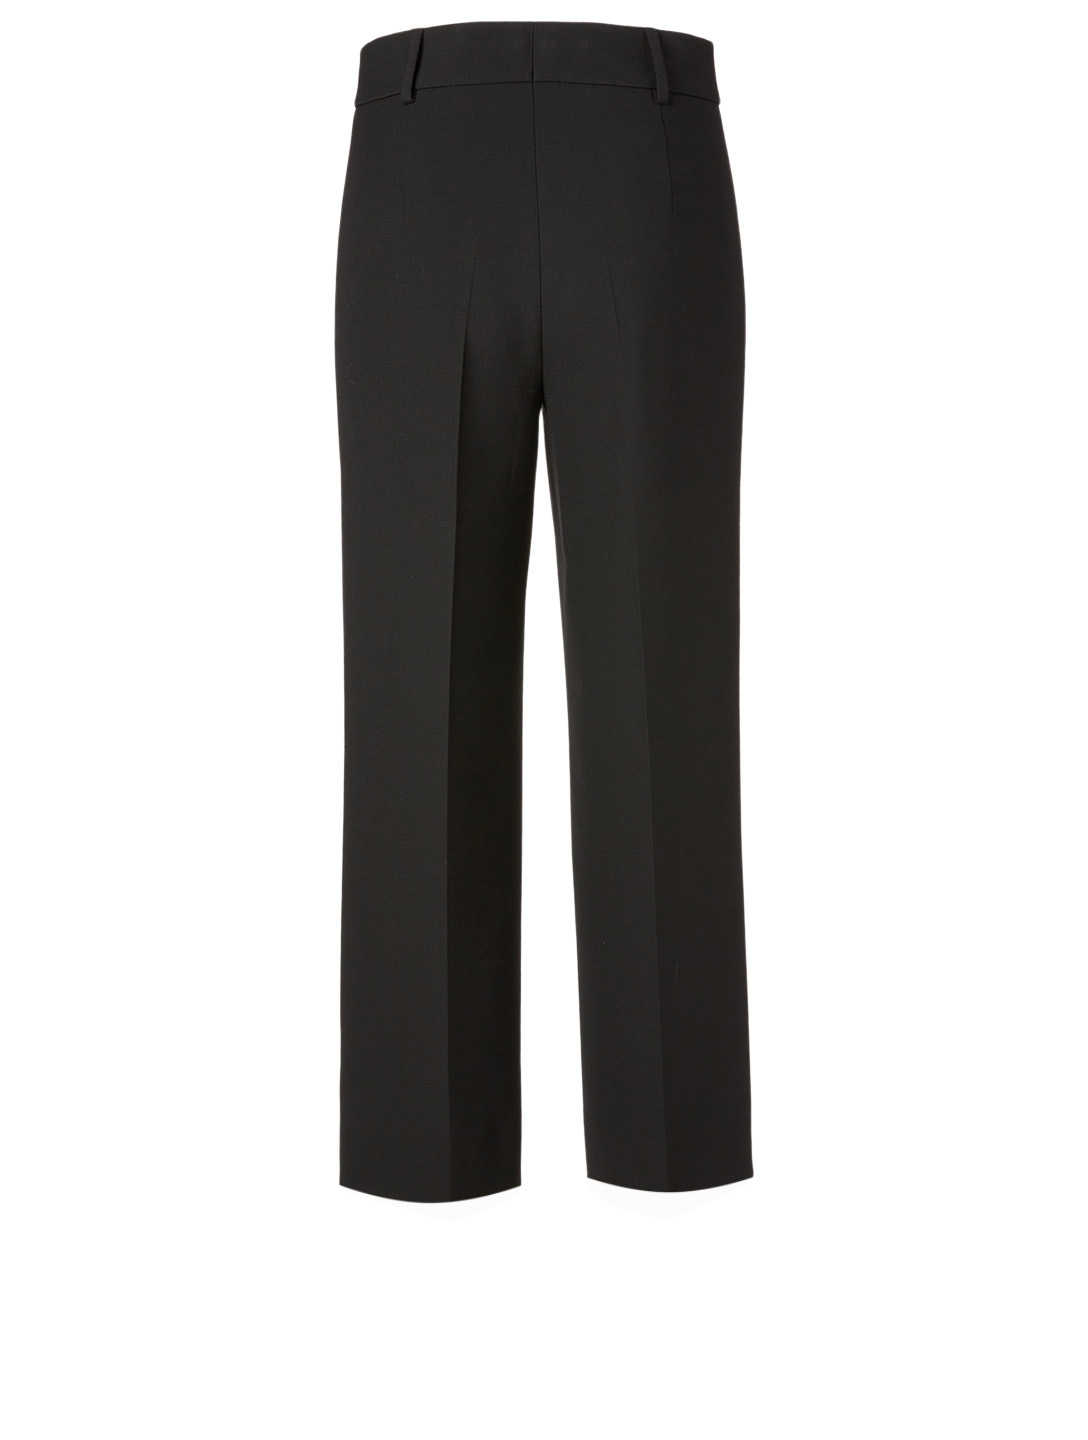 AKRIS PUNTO Pebble Crepe Cropped Pants Women's Black